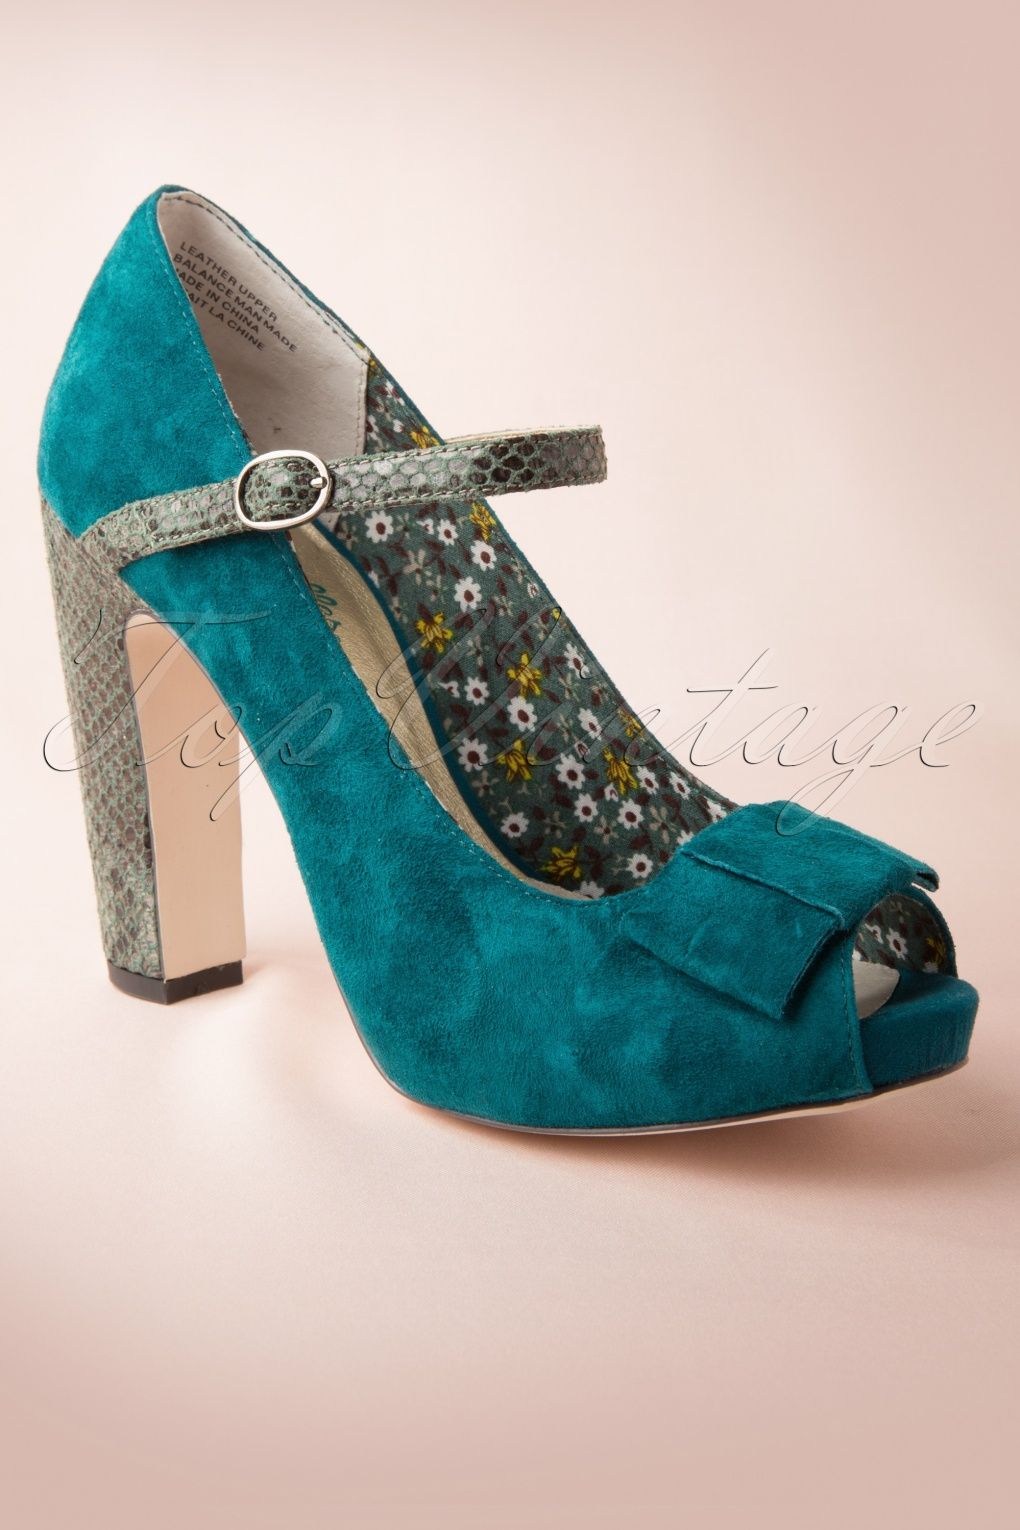 df1c793f12 Seychelles - 60s Fifth Weel Mary Jane Pumps in Teal